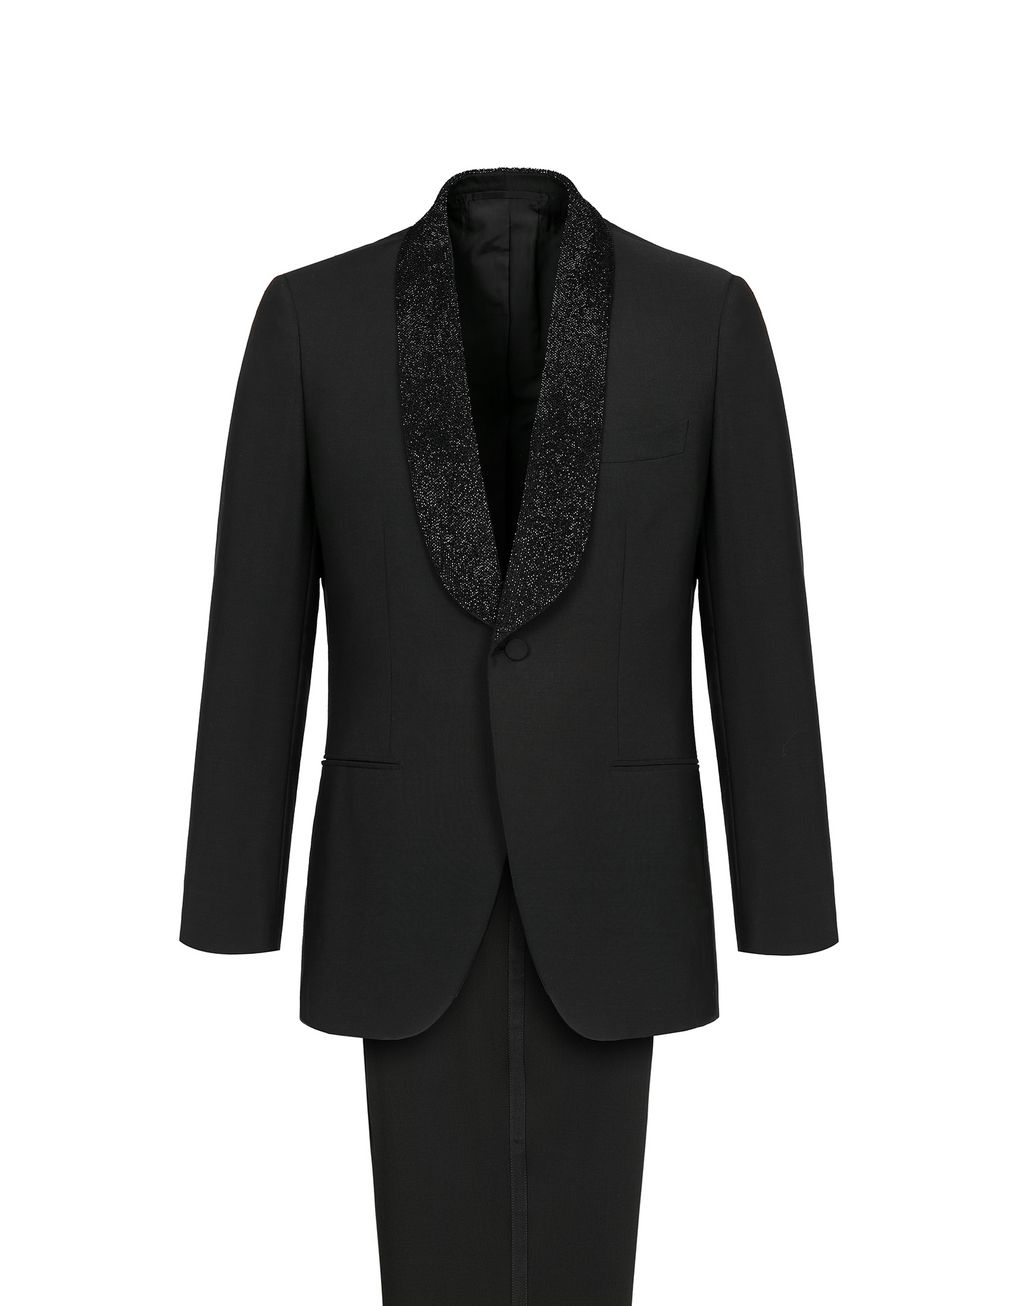 BRIONI Black Parioli Tuxedo with Black Pearl Embroidered Shawl Collar Tuxedo Man f